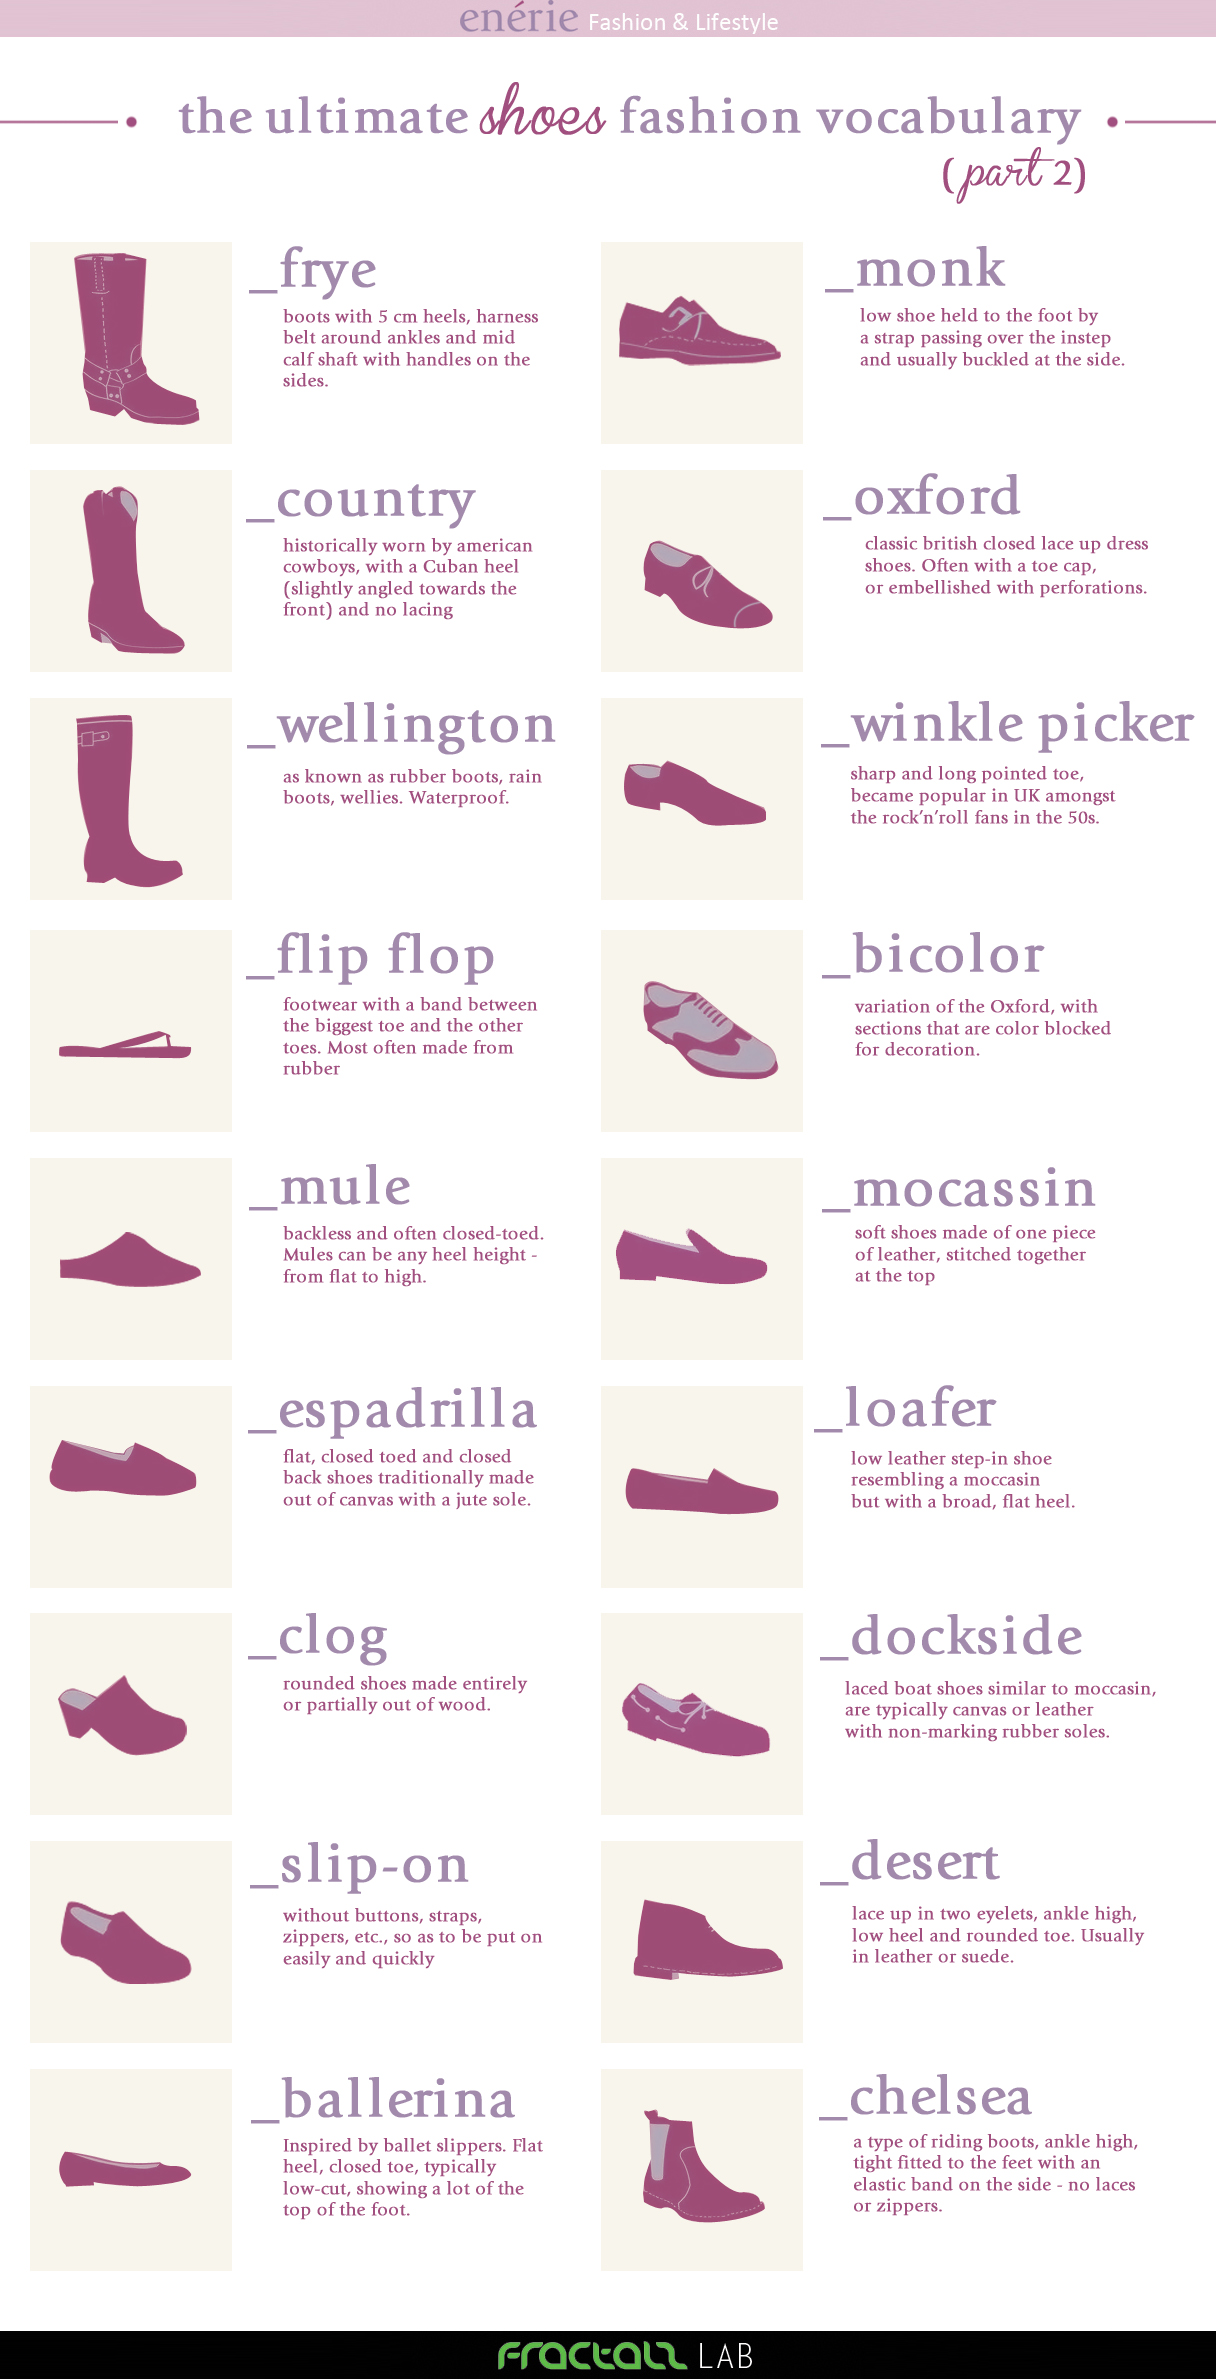 1000 Images About Style On Pinterest Trendy Taste Fashion Vocabulary And Collage Vintage